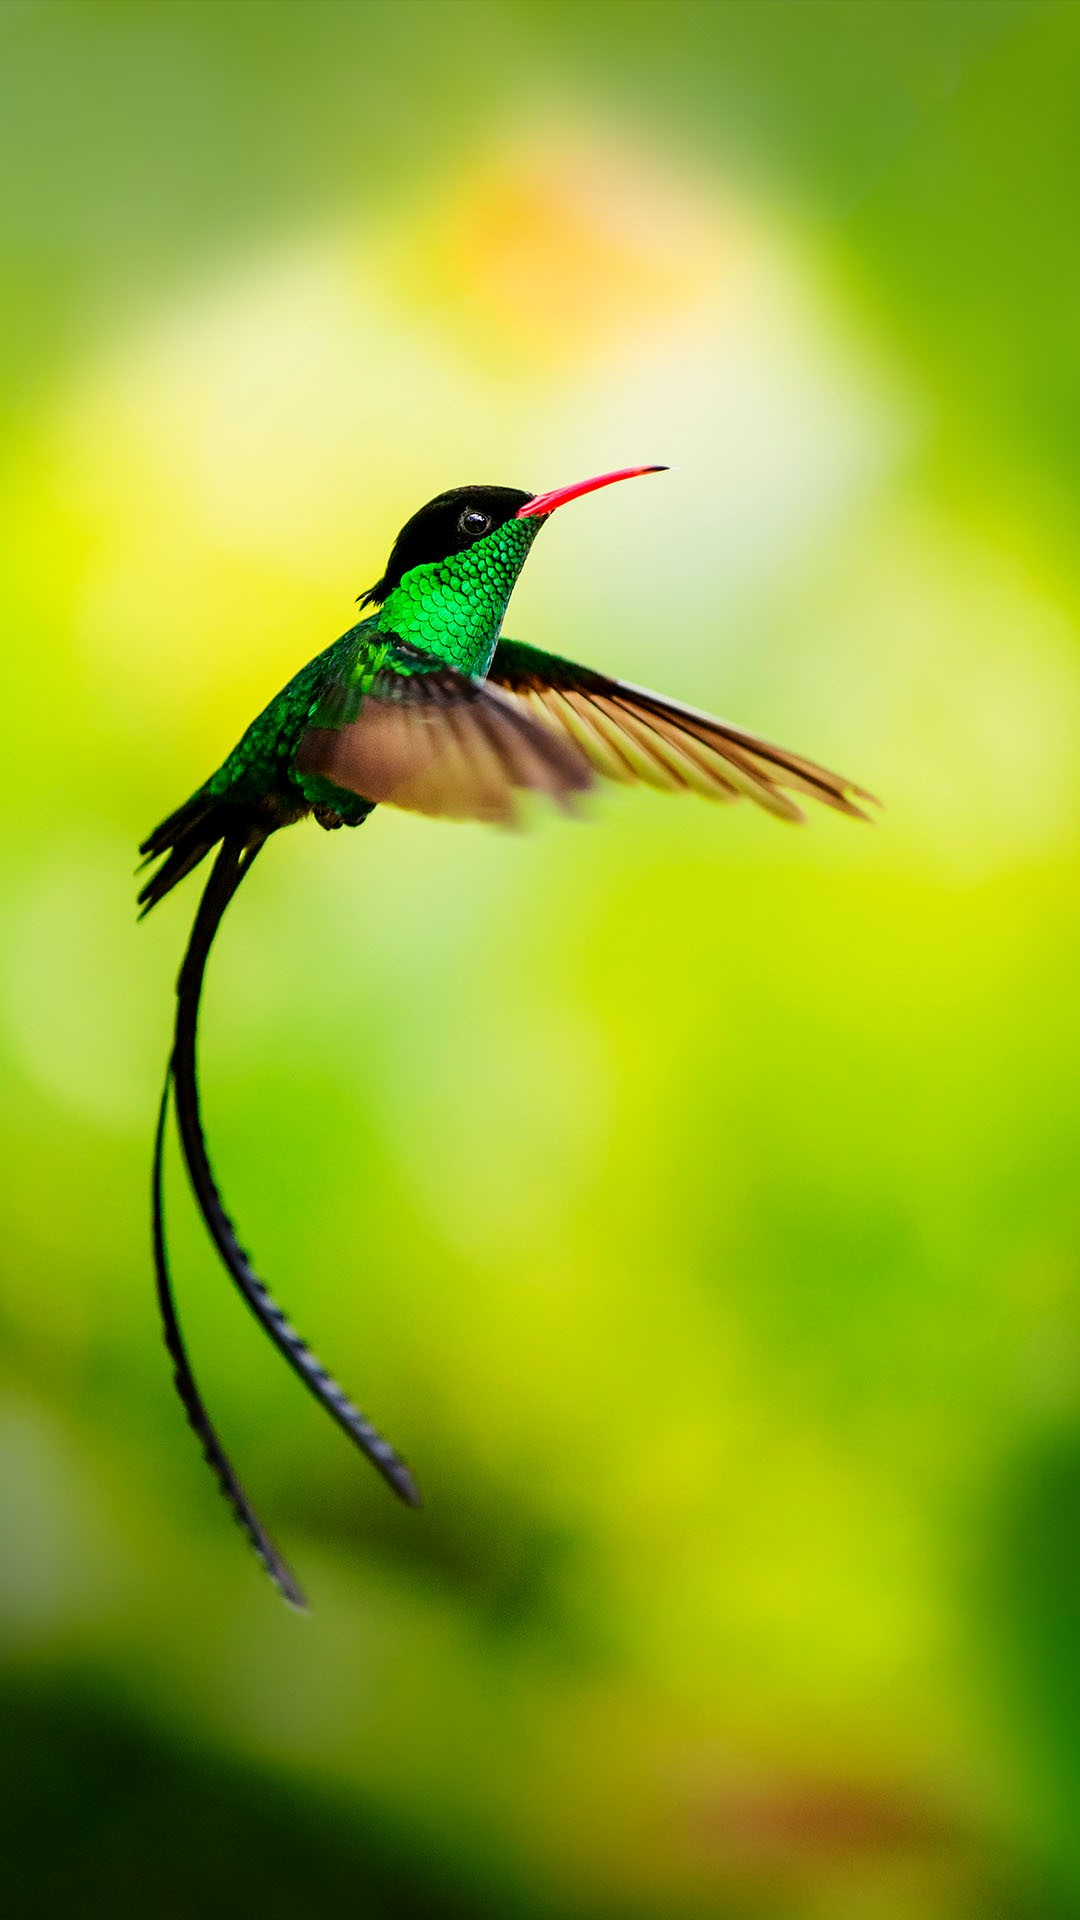 hummingbird in flight jamaica windows 10 spotlight images